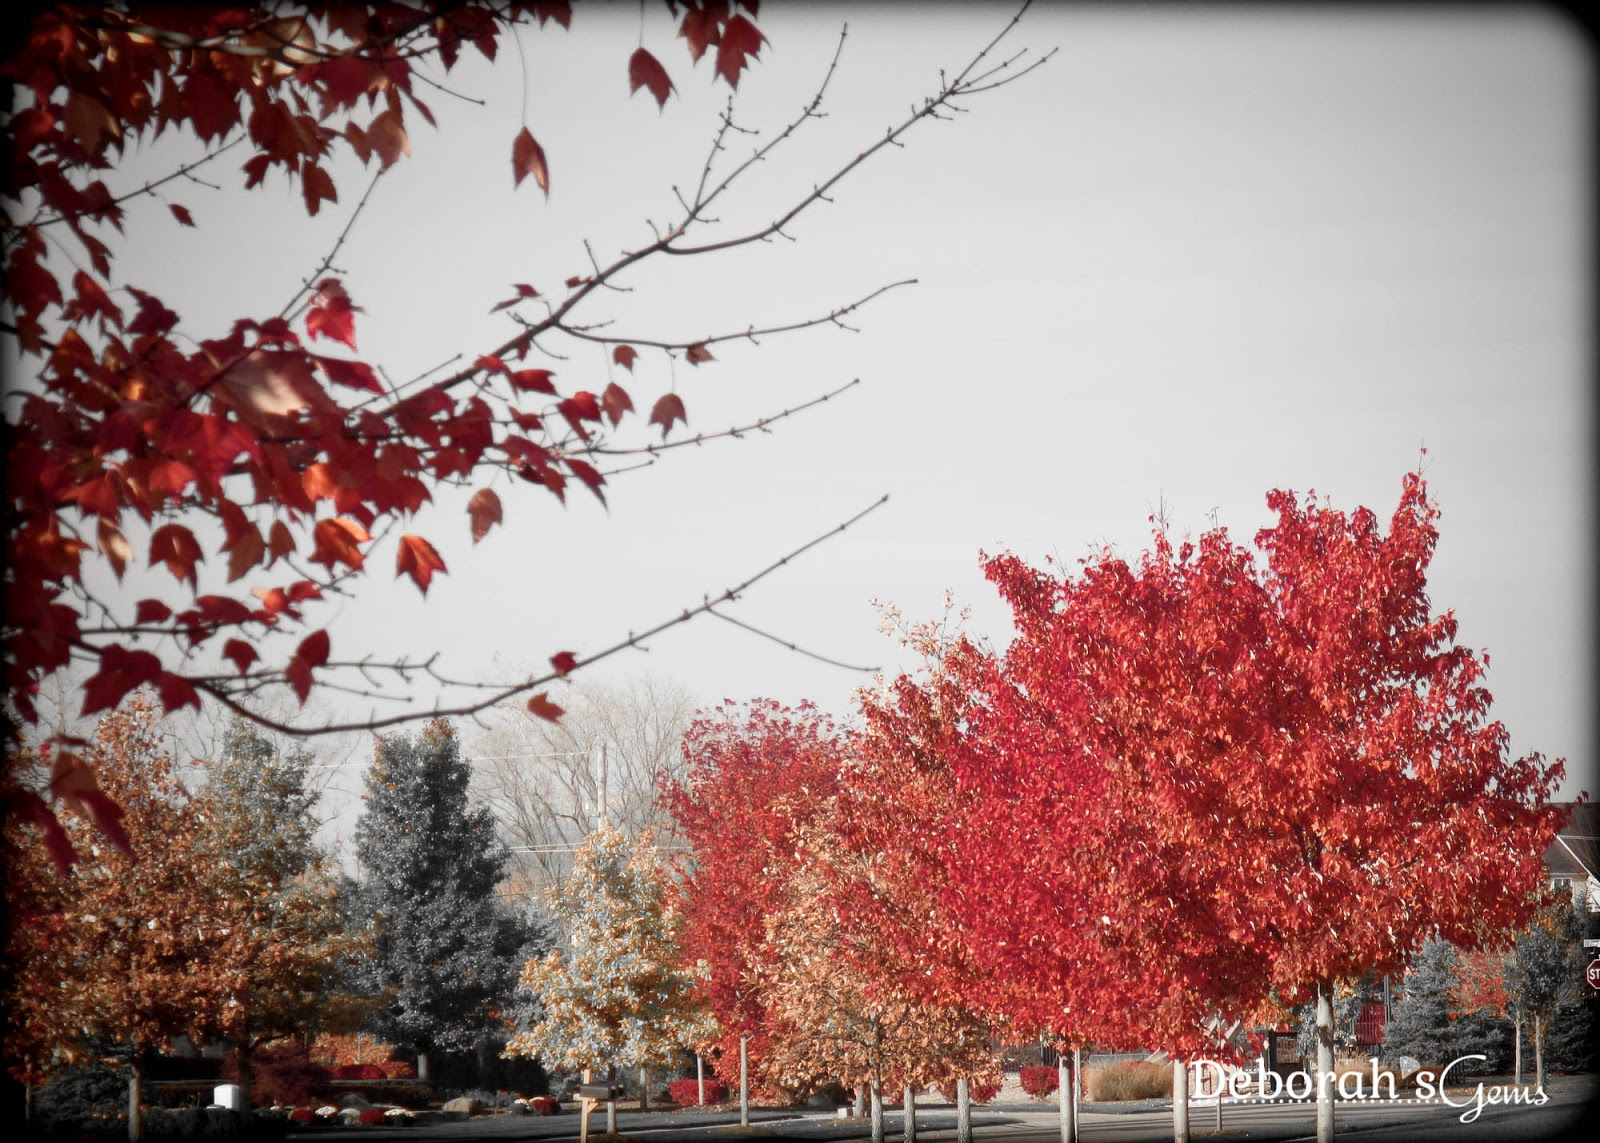 Autumn Glory 3 - photo by Deborah Frings - Deborah's Gems